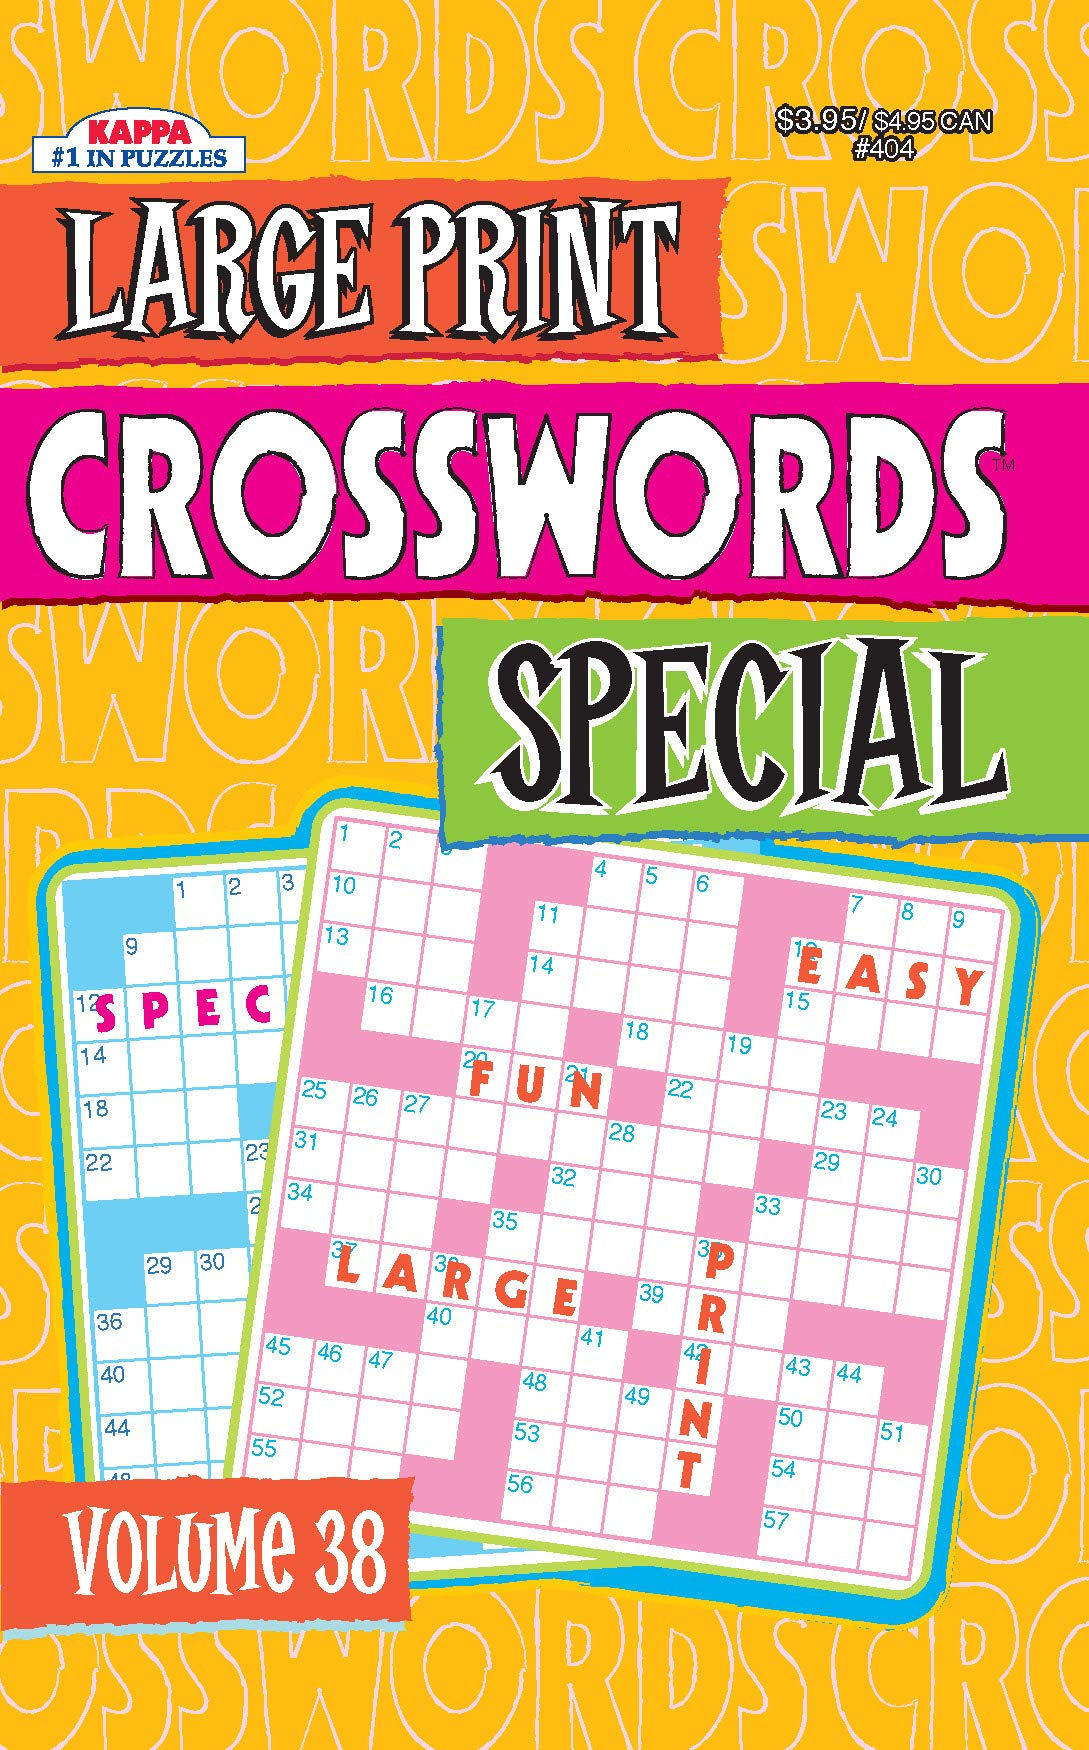 - Large Print Crosswords Special Puzzle Book-Volume 38 – KAPPA BOOKS